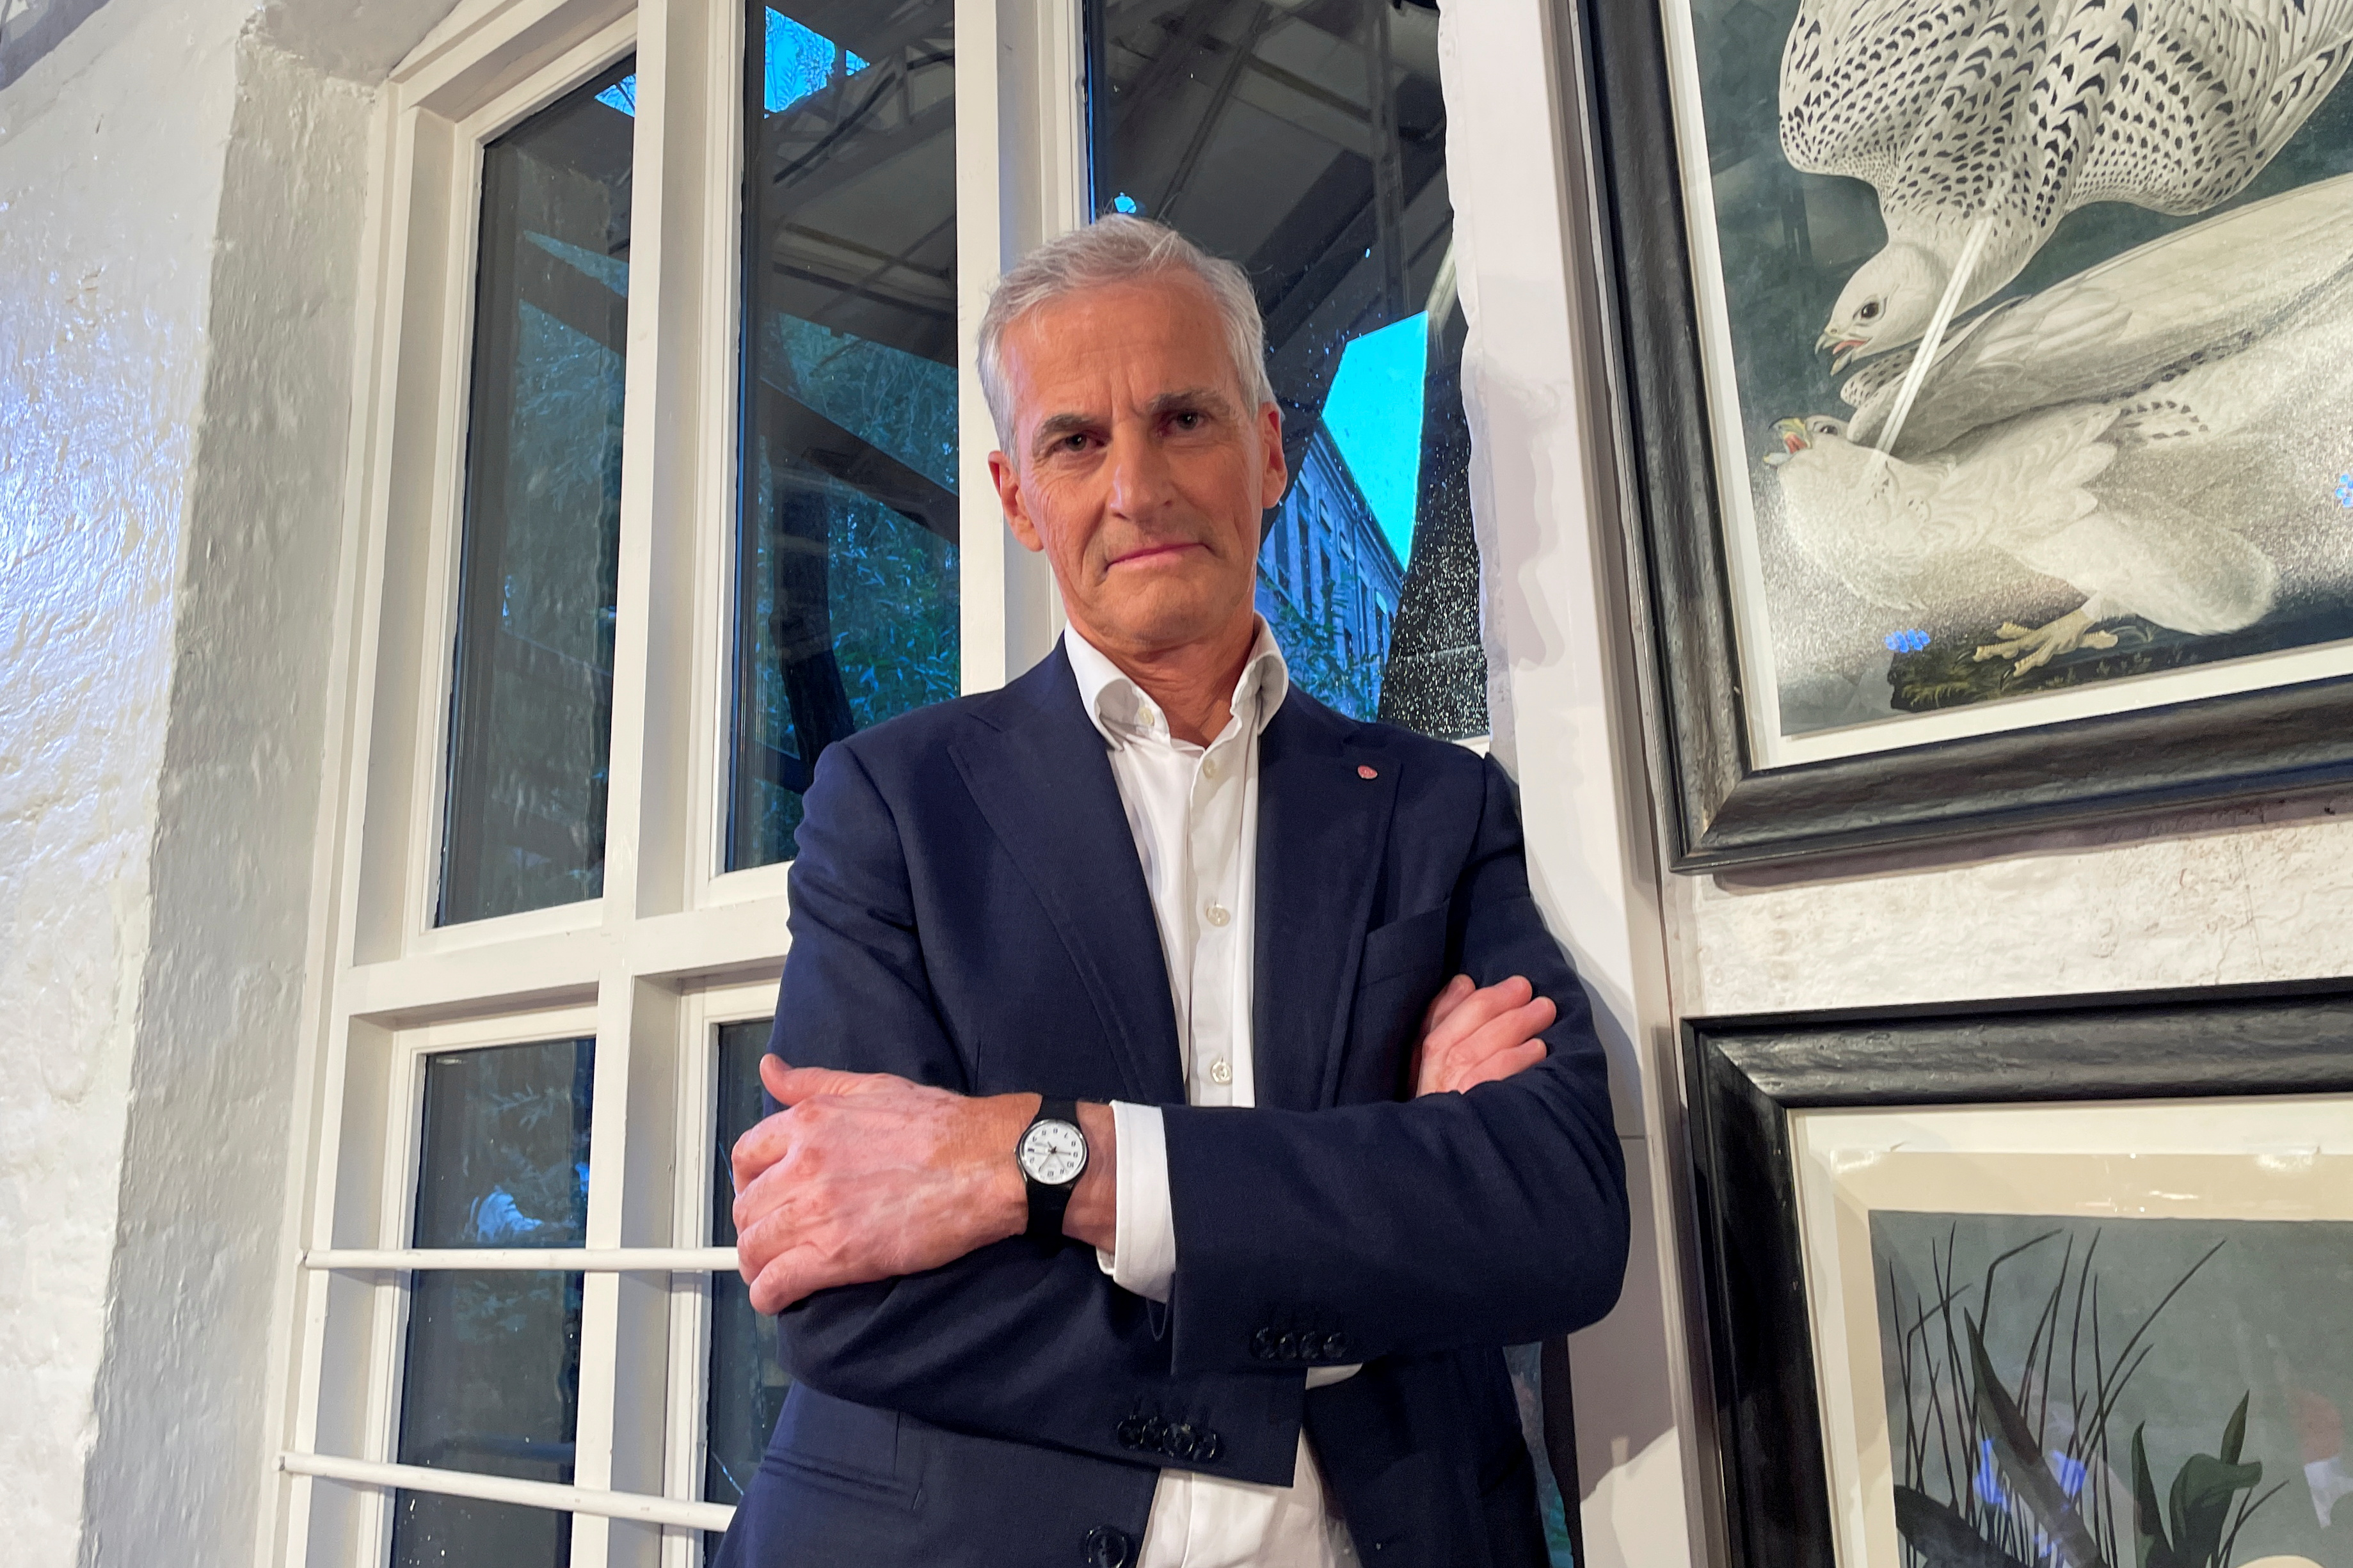 Candidate for Norway's prime minister Jonas Gahr Stoere from Labour Party poses for a picture in central Oslo, Norway August 9, 2021. Picture taken August 9, 2021. REUTERS/Gwladys Fouche